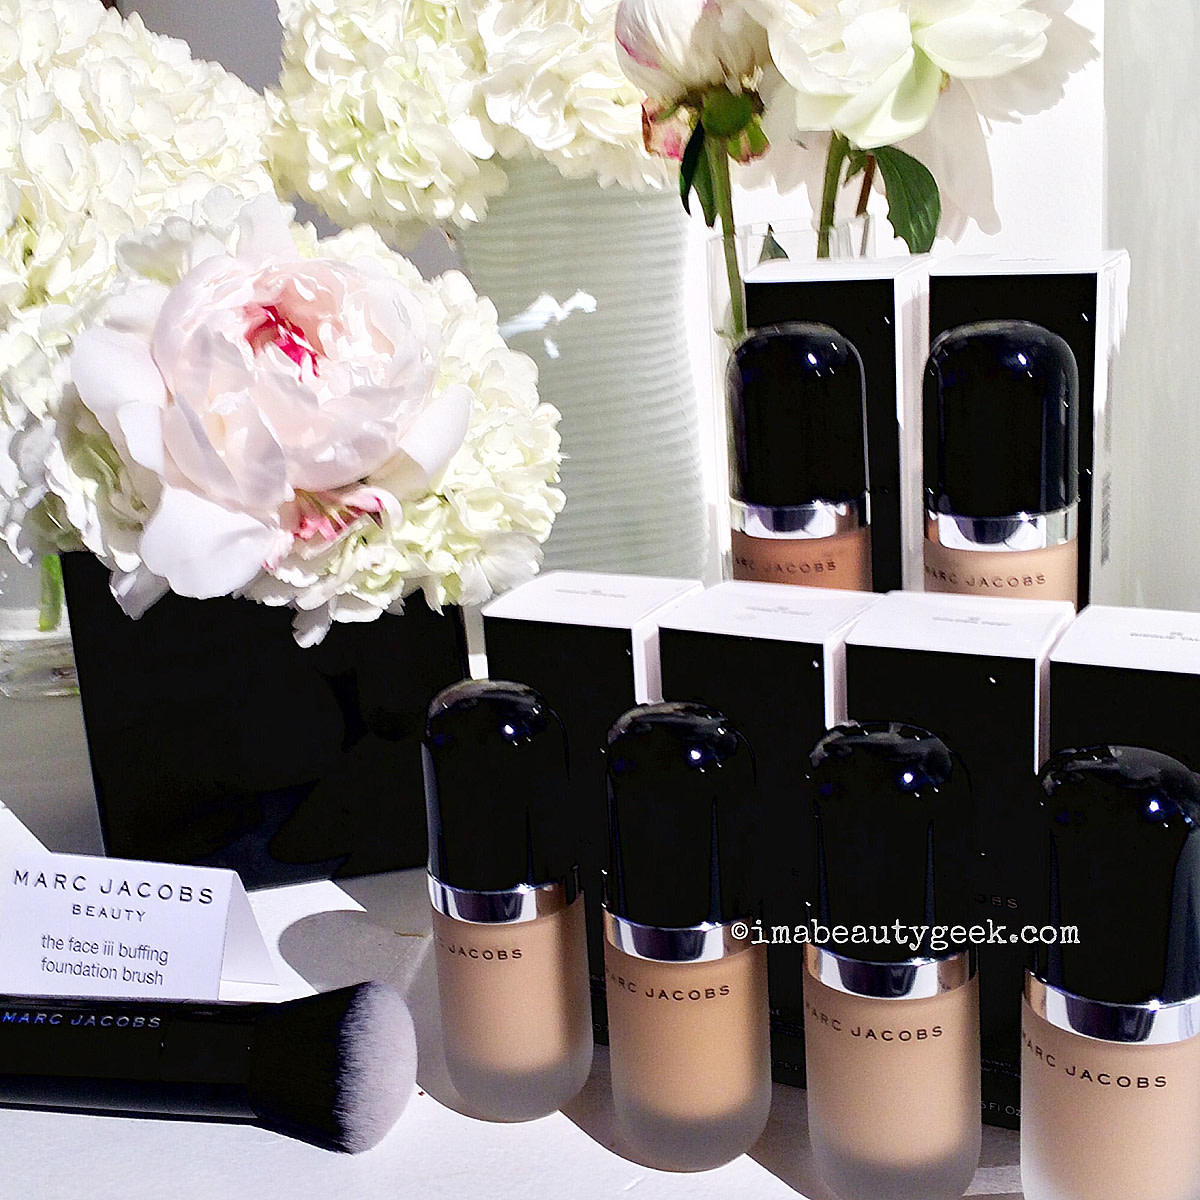 Sephora lowers free-shipping minimum_Marc Jacobs Re(marc)able Foundation and Face iii Buffing Brush